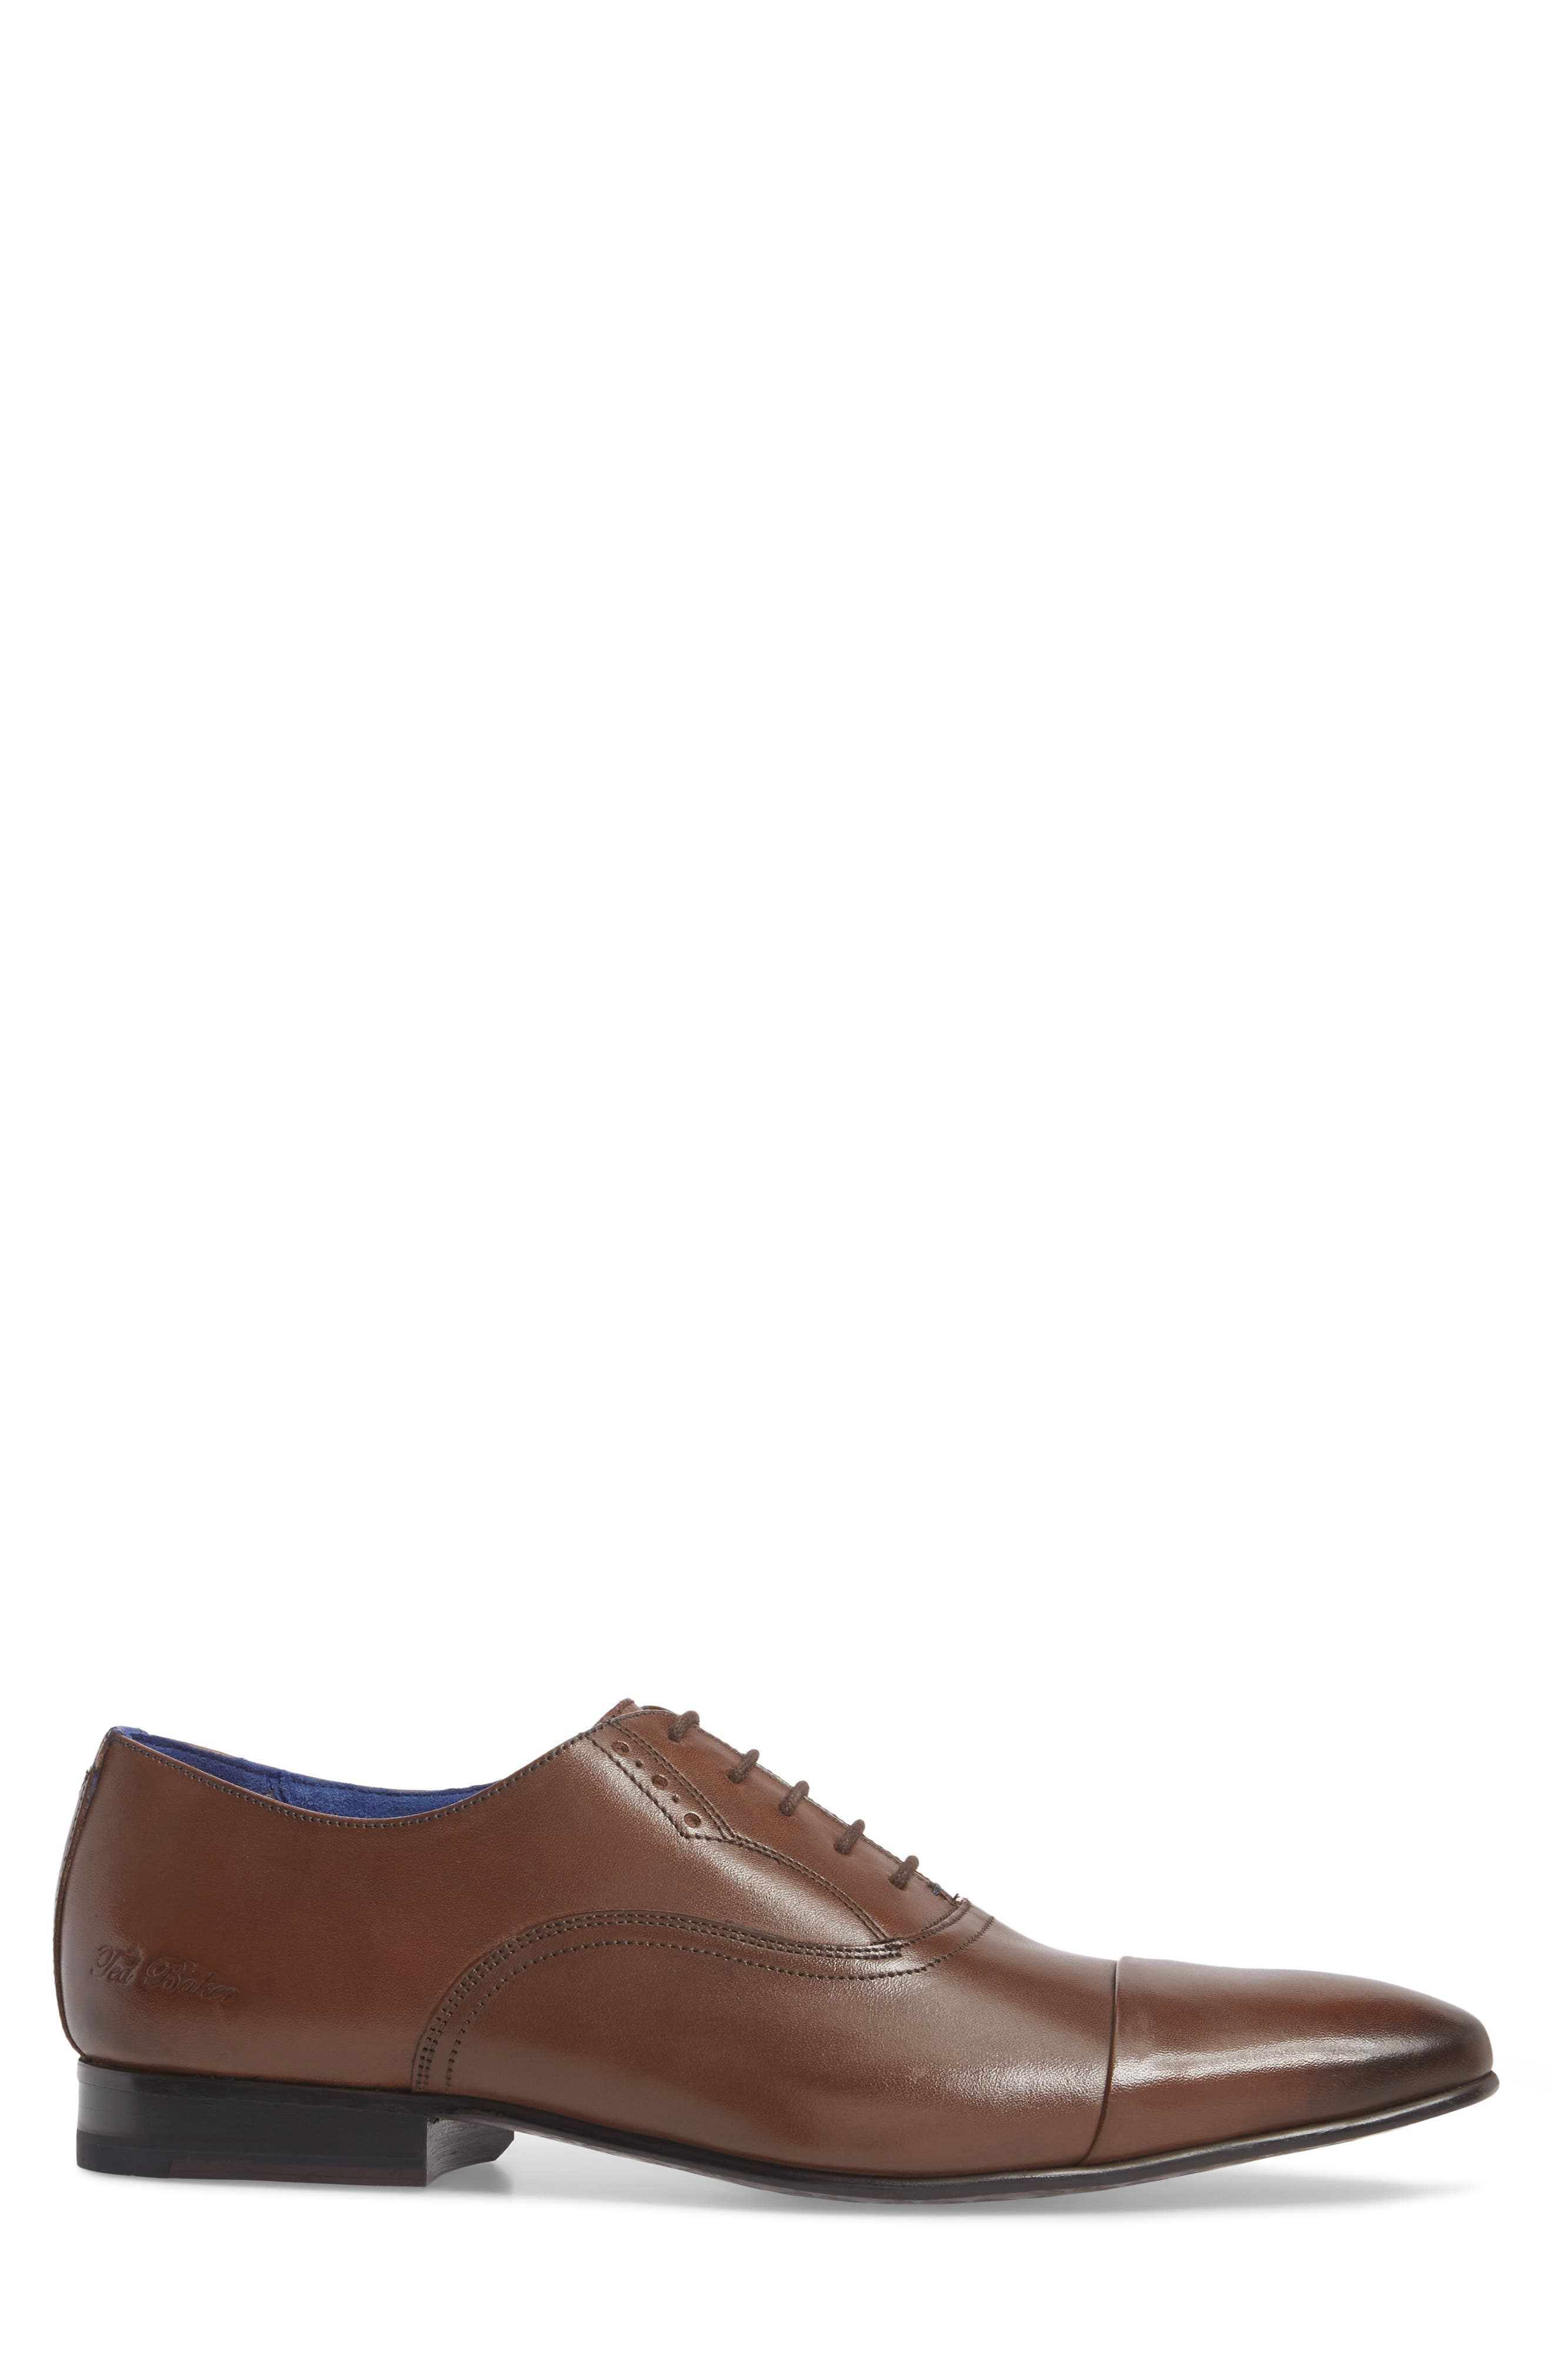 Murain Cap Toe Oxford,                             Alternate thumbnail 9, color,